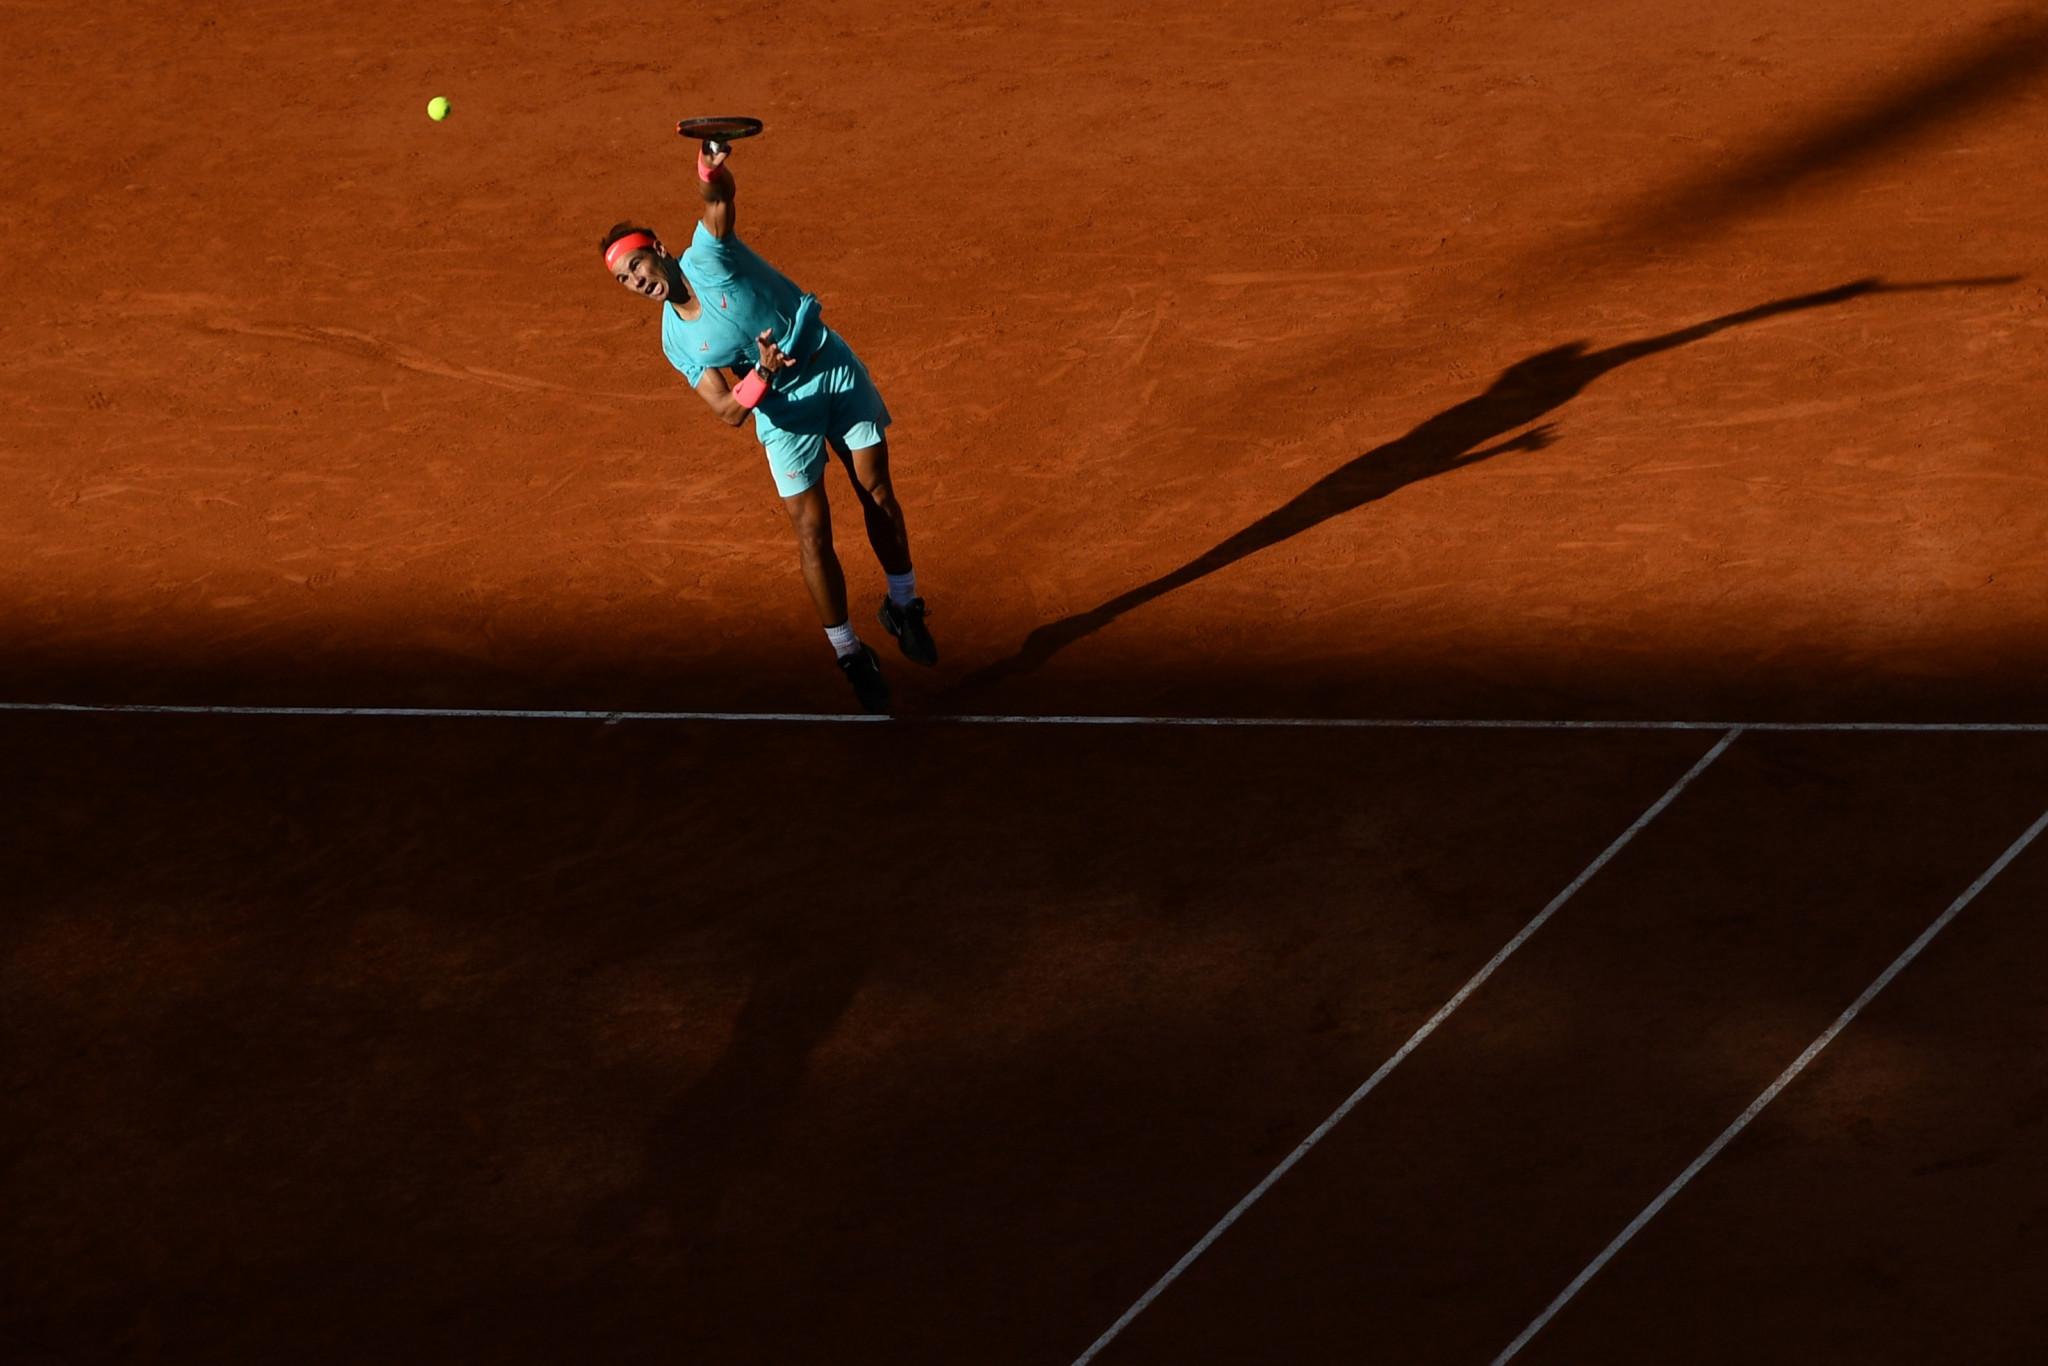 Should Nadal win the final, he will equal the record of 20 men's singles Grand Slam titles ©Getty Images